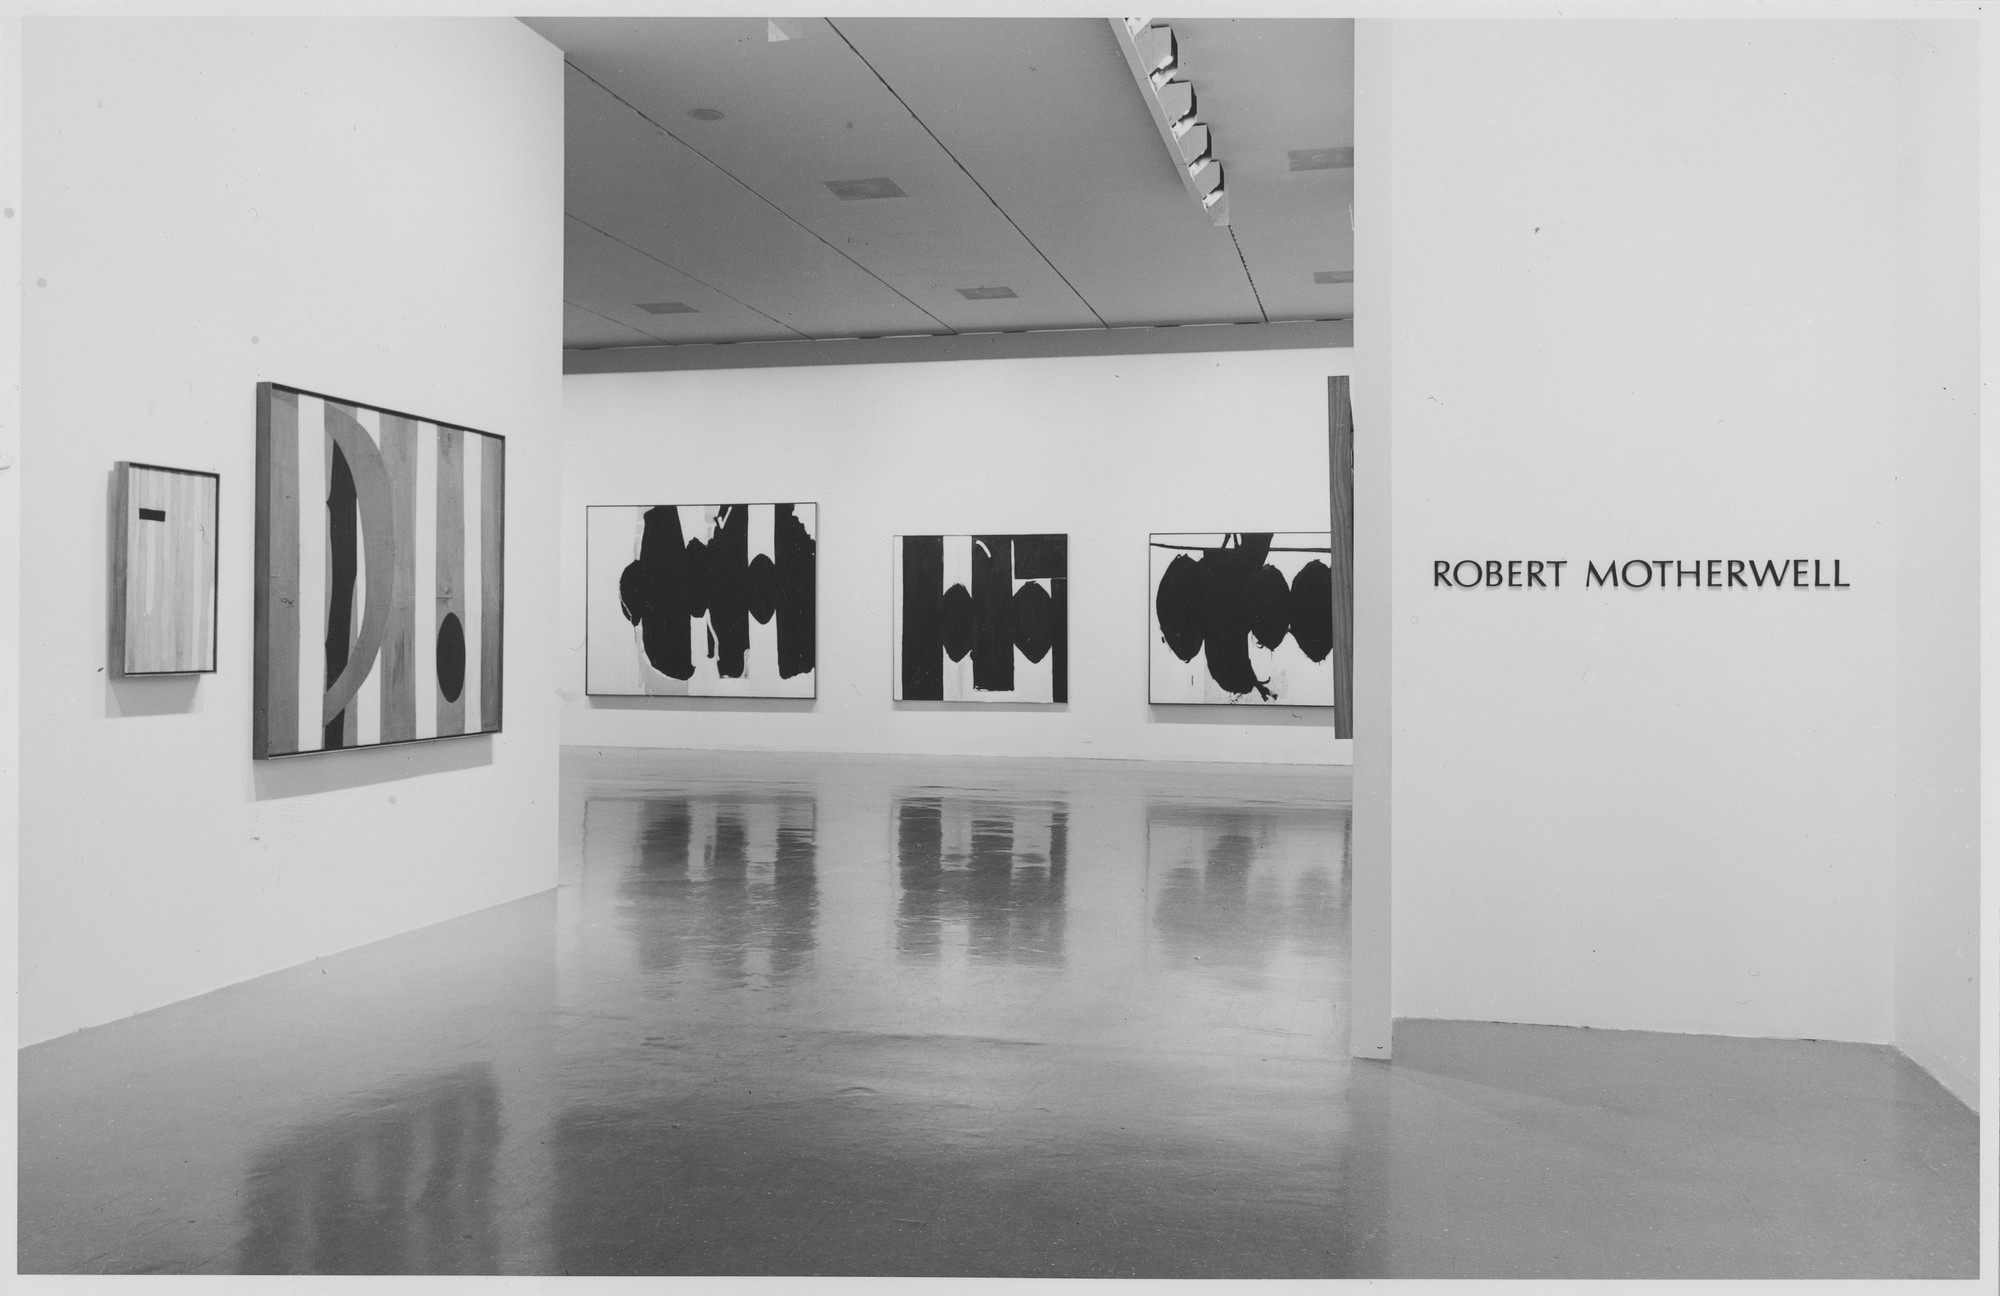 "Installation view of the exhibition, ""Robert Motherwell"" October 1, 1965–November 28, 1965. Photographic Archive. The Museum of Modern Art Archives, New York. IN776.1. Photograph by Rolf Petersen."